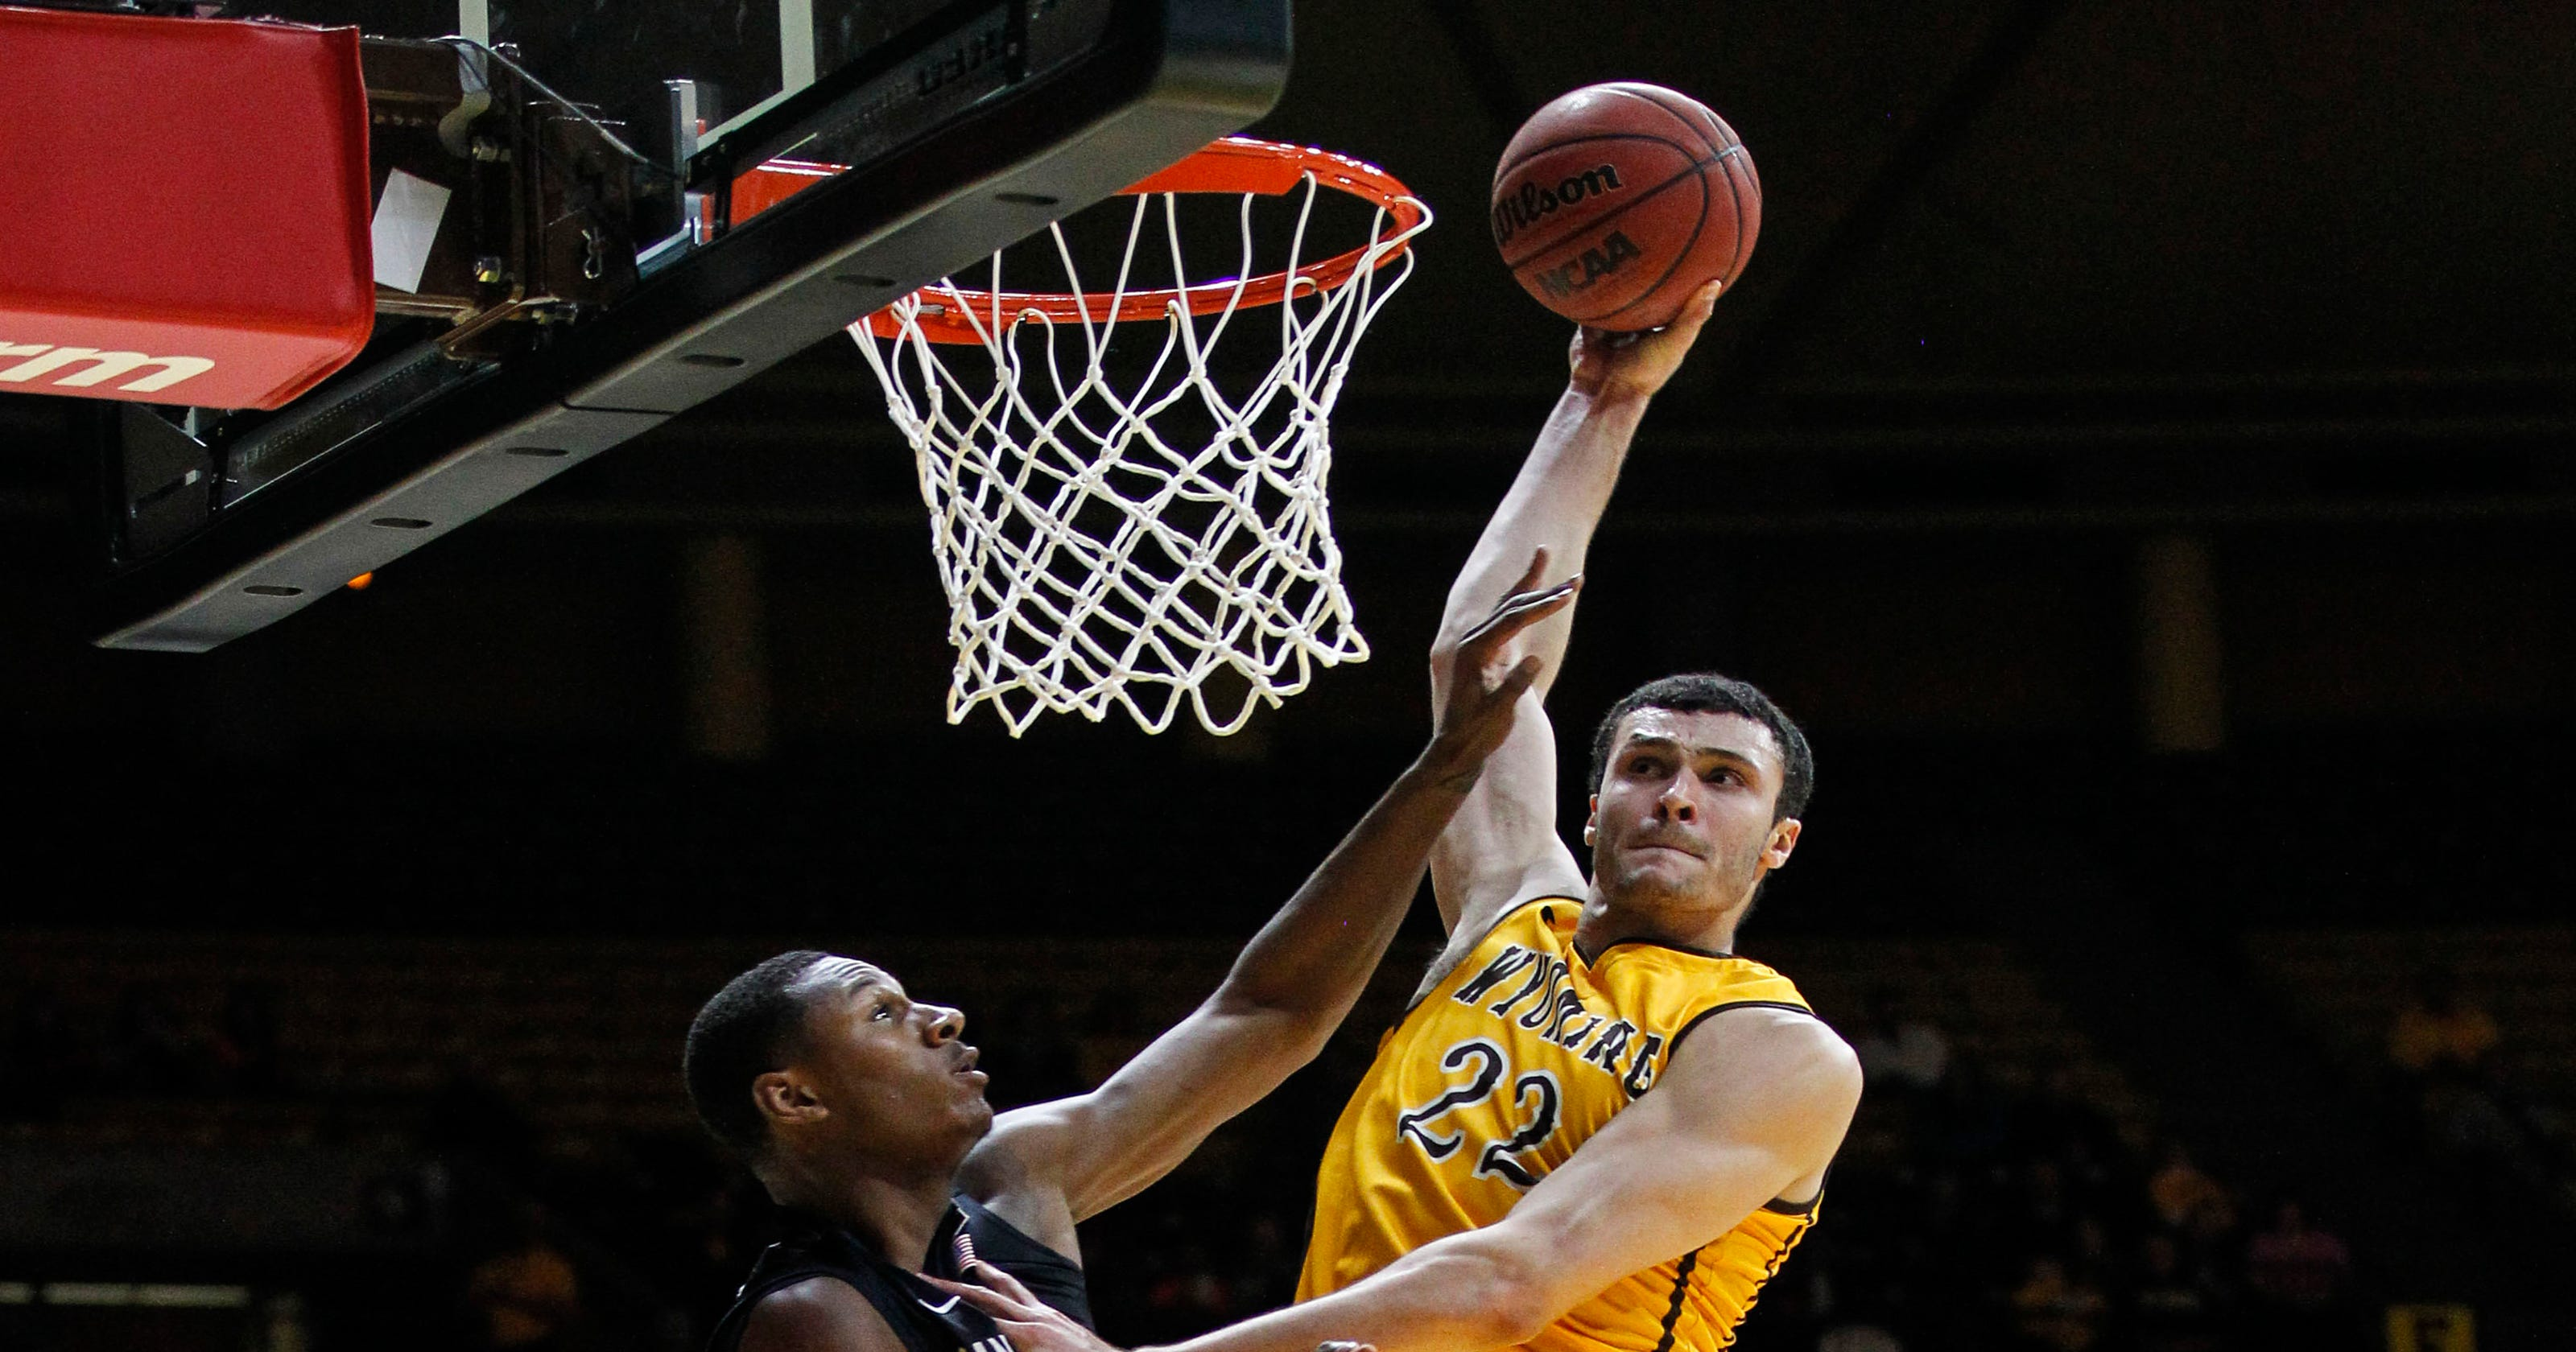 Wyoming's Larry Nance Jr  grows beyond a disease's constraints